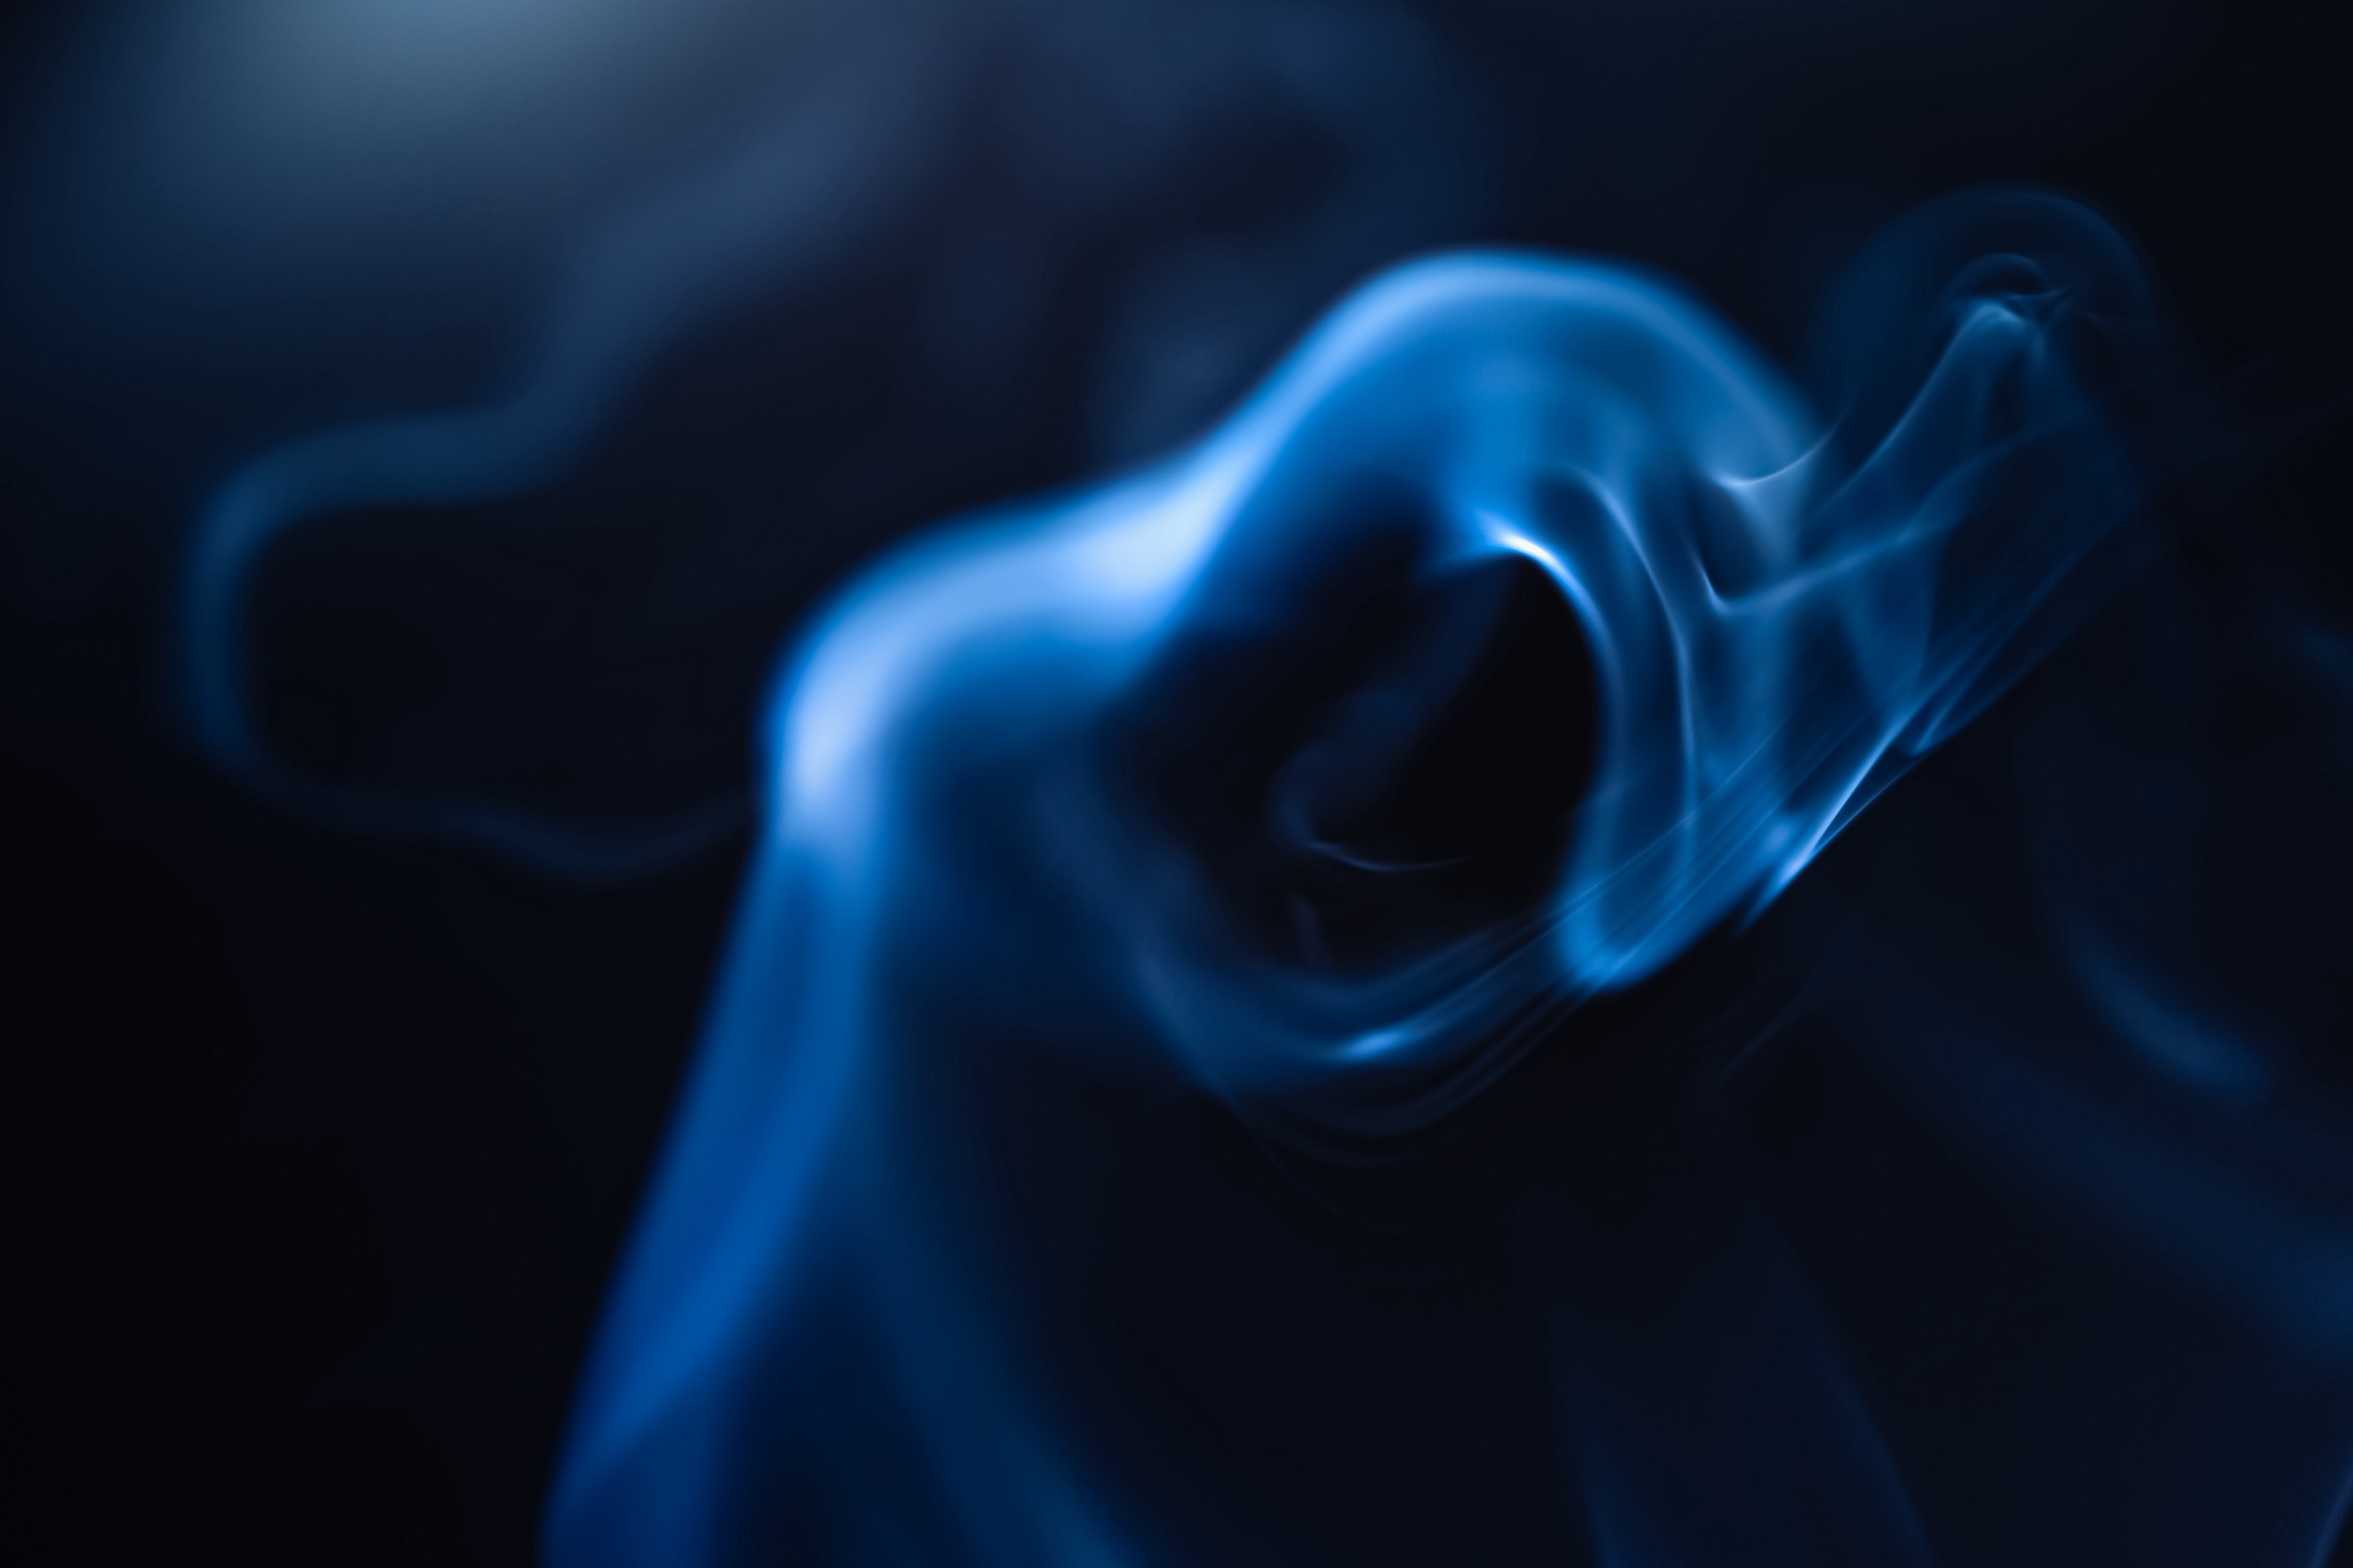 Image of a cloud of smoke against a dark background